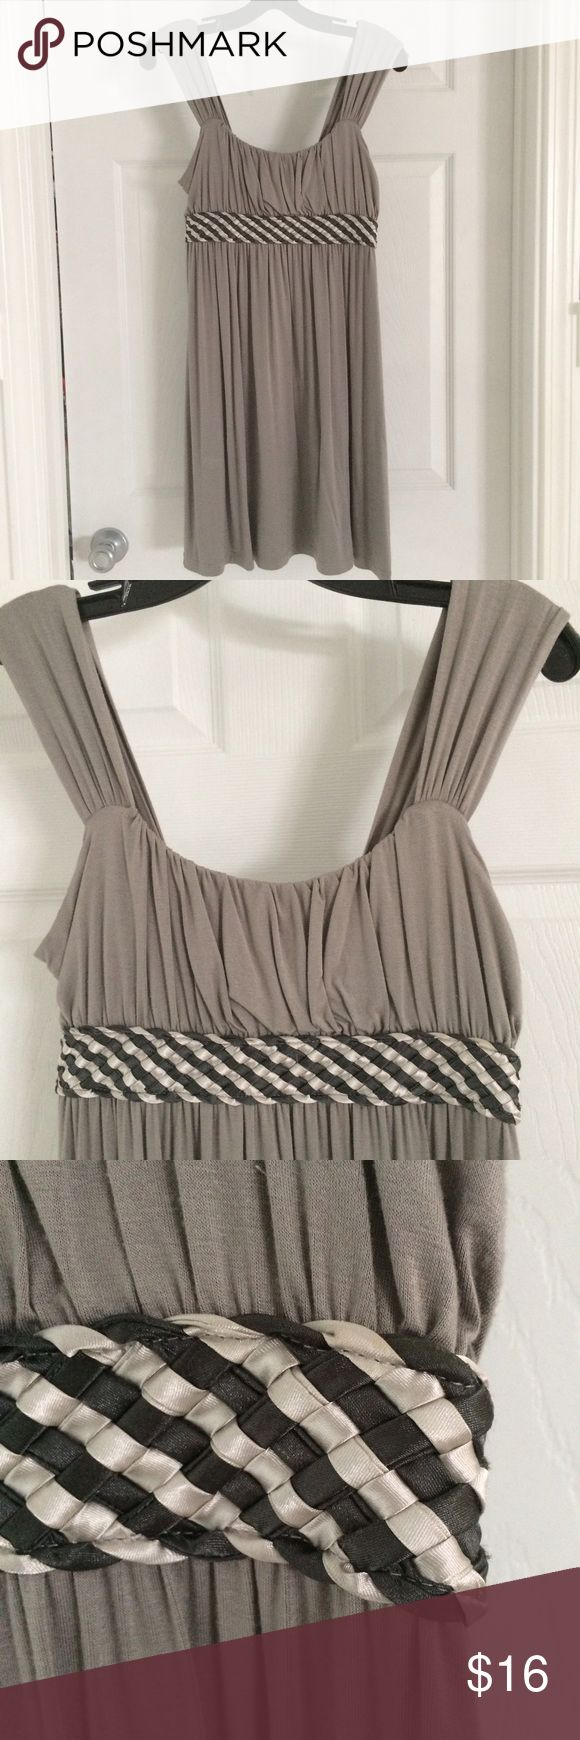 Soprano Midi Dress Gray Soprano midi dress from Nordstrom. Charcoal and cream satin detail at bodice. Lots of flattering pleats and gathering on top and soft, wide straps at the shoulders. Could also be worn with leggings and strappy heels. 95% rayon, 5% spandex. Soprano Dresses Midi